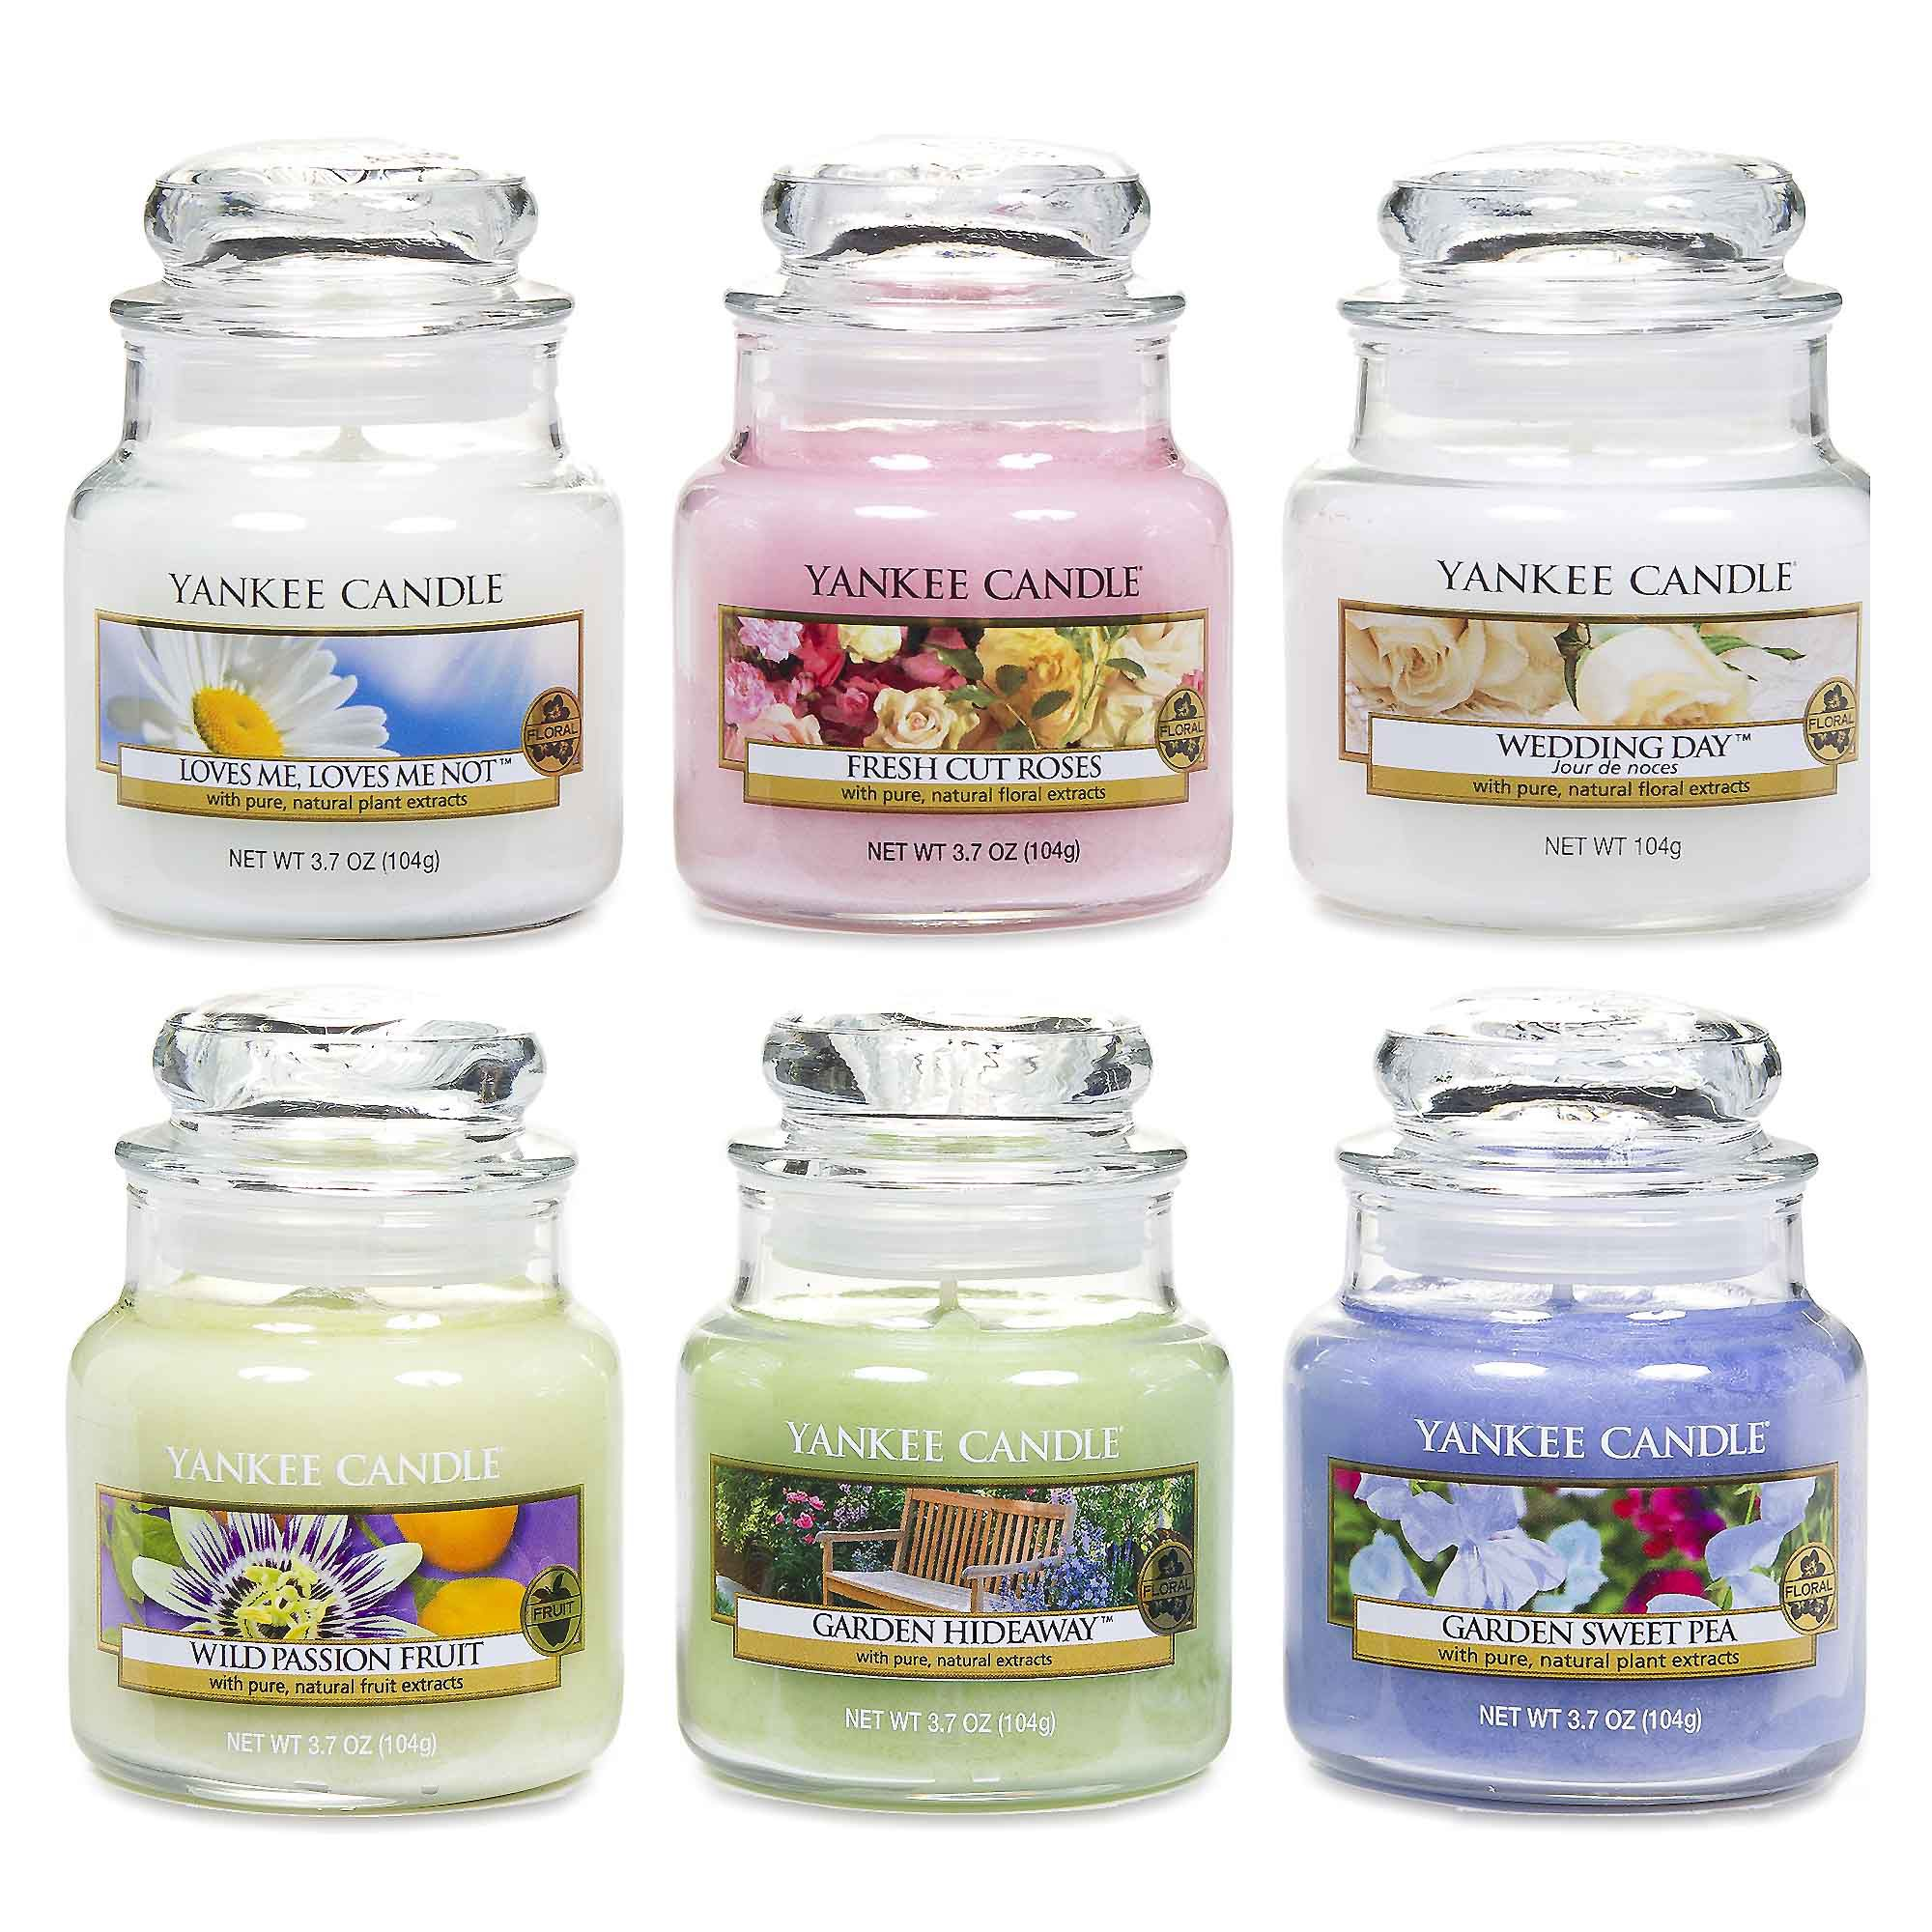 Yankee Candle Set 6 candele in giara di vetro piccola in 6 fragranze